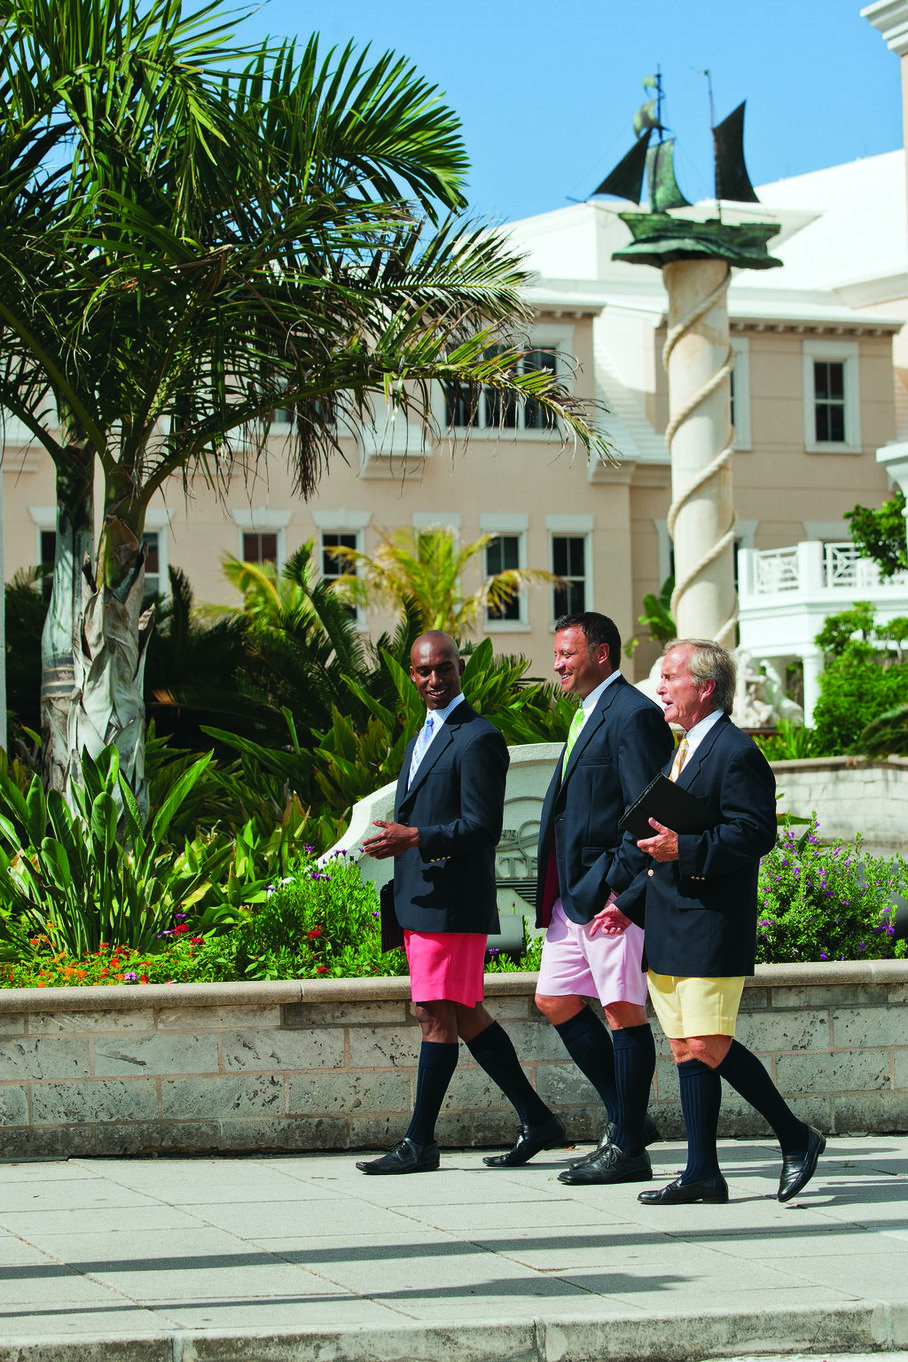 Bermuda In Short Pretty In Pink Repeating Islands